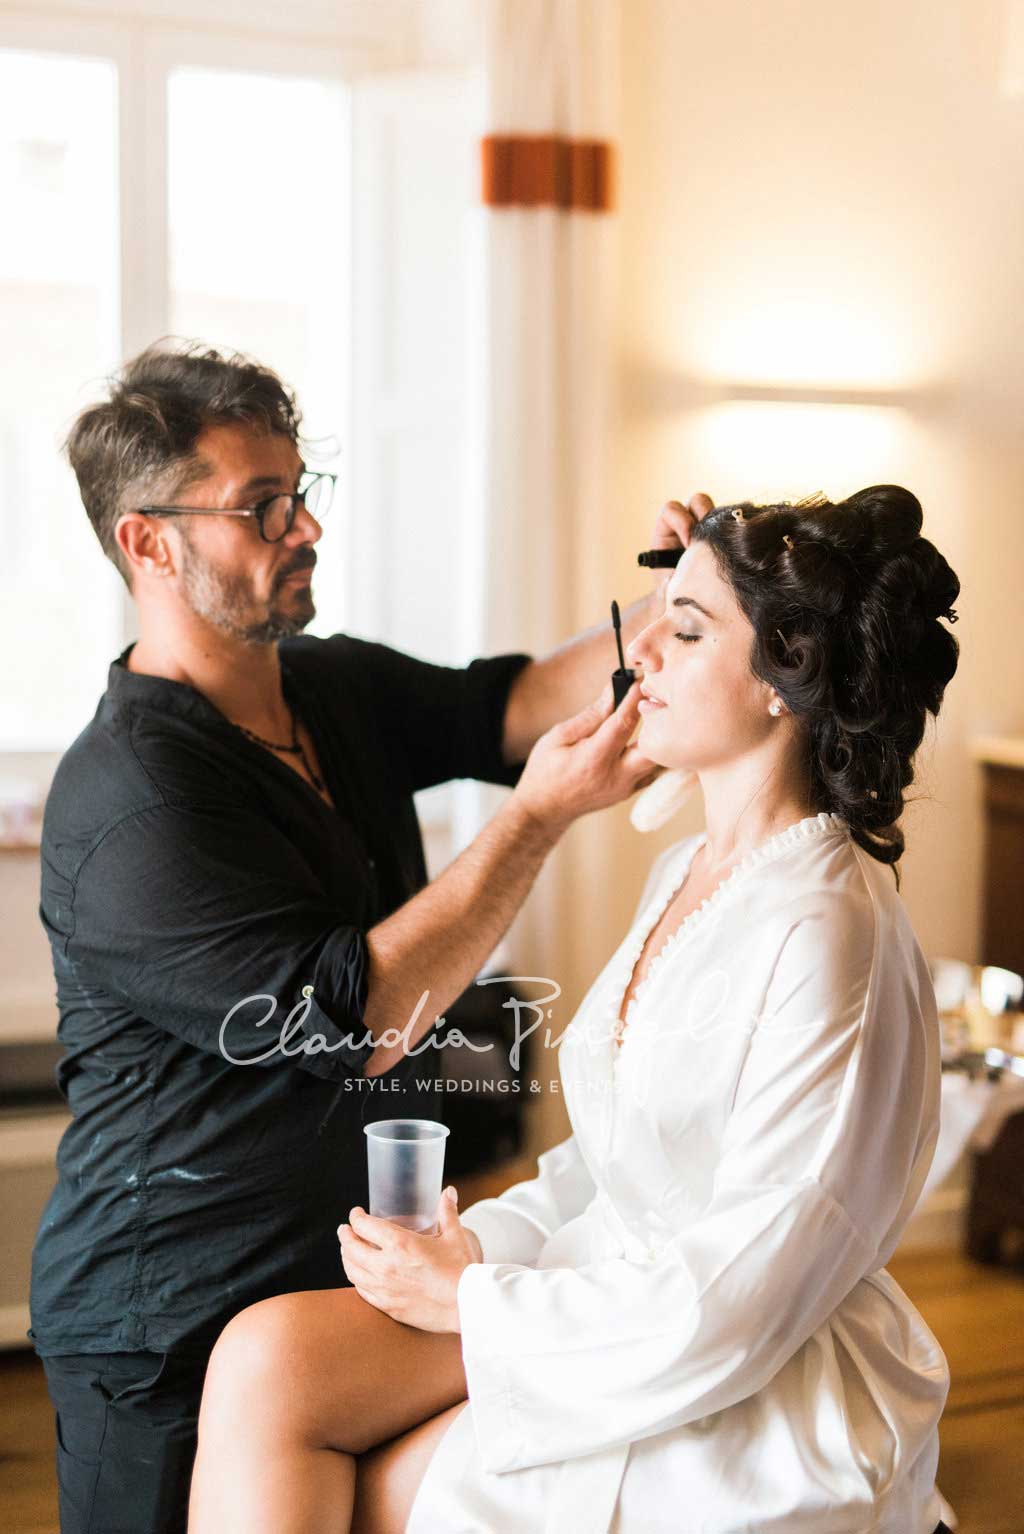 -Makeup-naturalmakeup-gettingprepared-bridepreparation-ceremony-wedding-elegance-moment